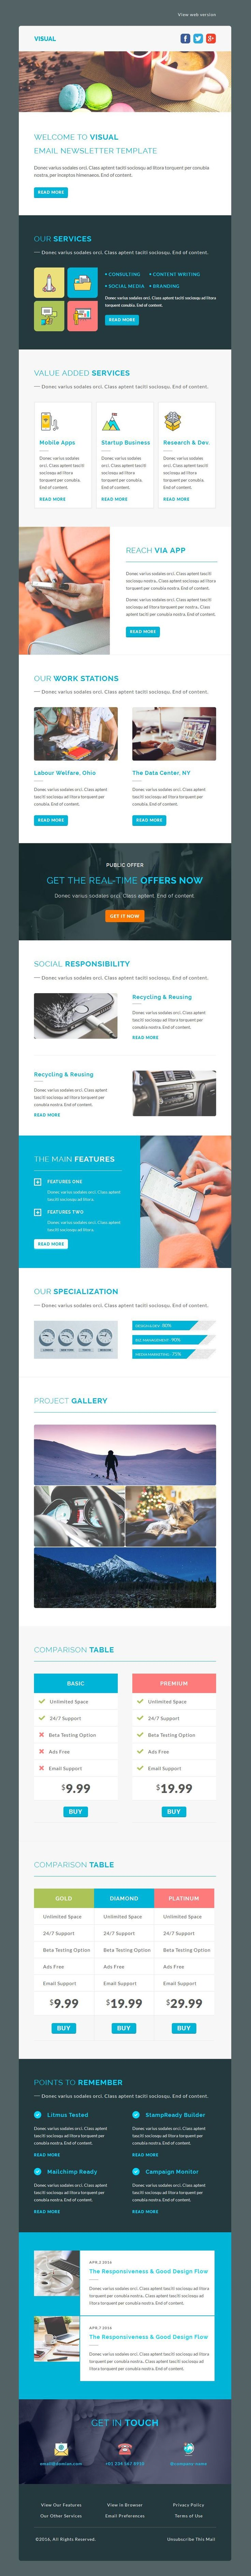 Visual Multipurpose Responsive Email Template - Download http://themeforest.net/item/visual-multipurpose-responsive-email-template/15358290?ref=pxcr